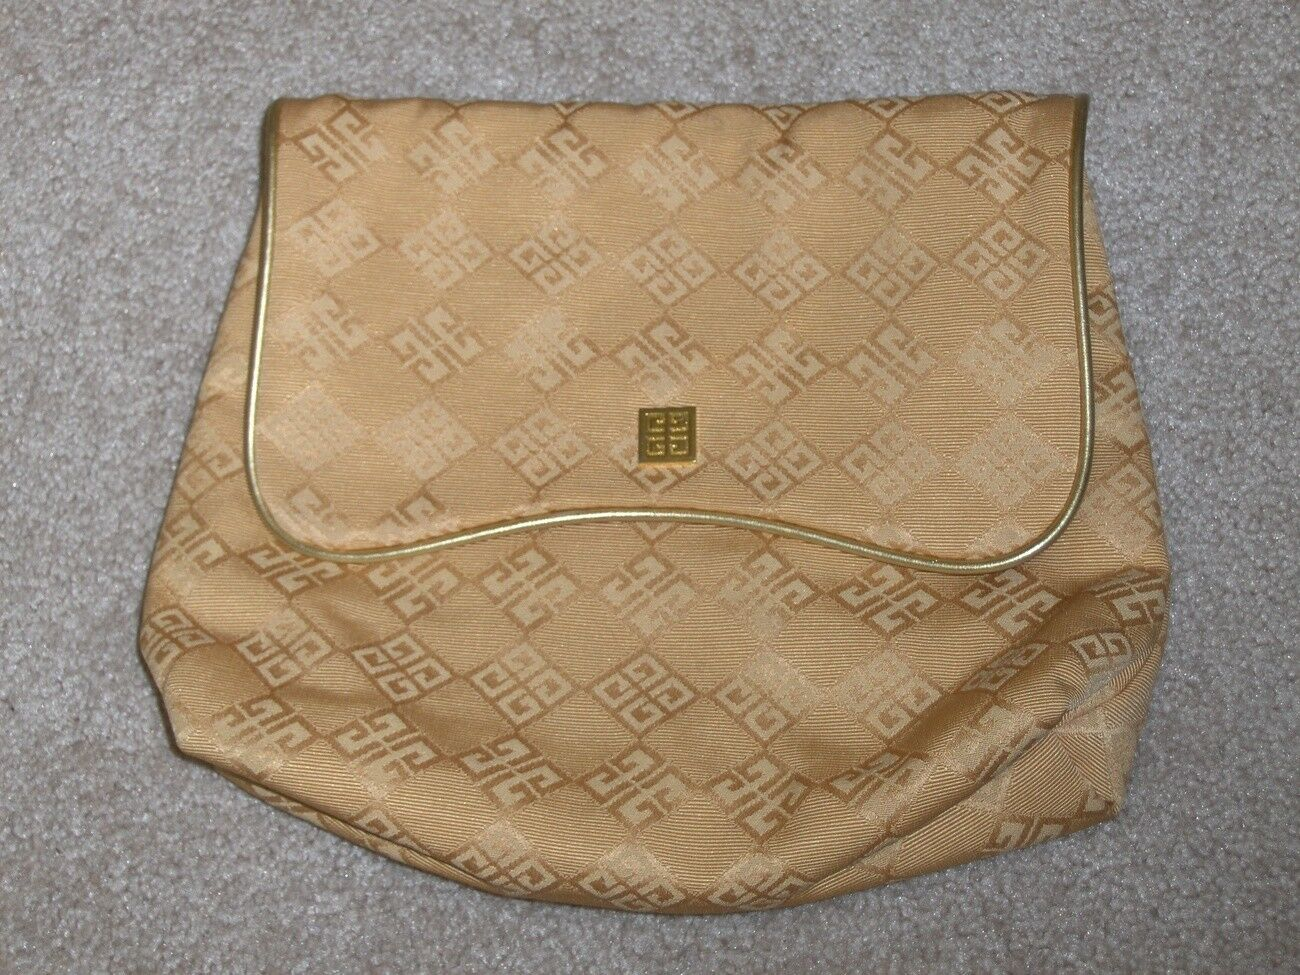 Givenchy Gold Clutch Handbag Cosmetic Bag Travel Carry